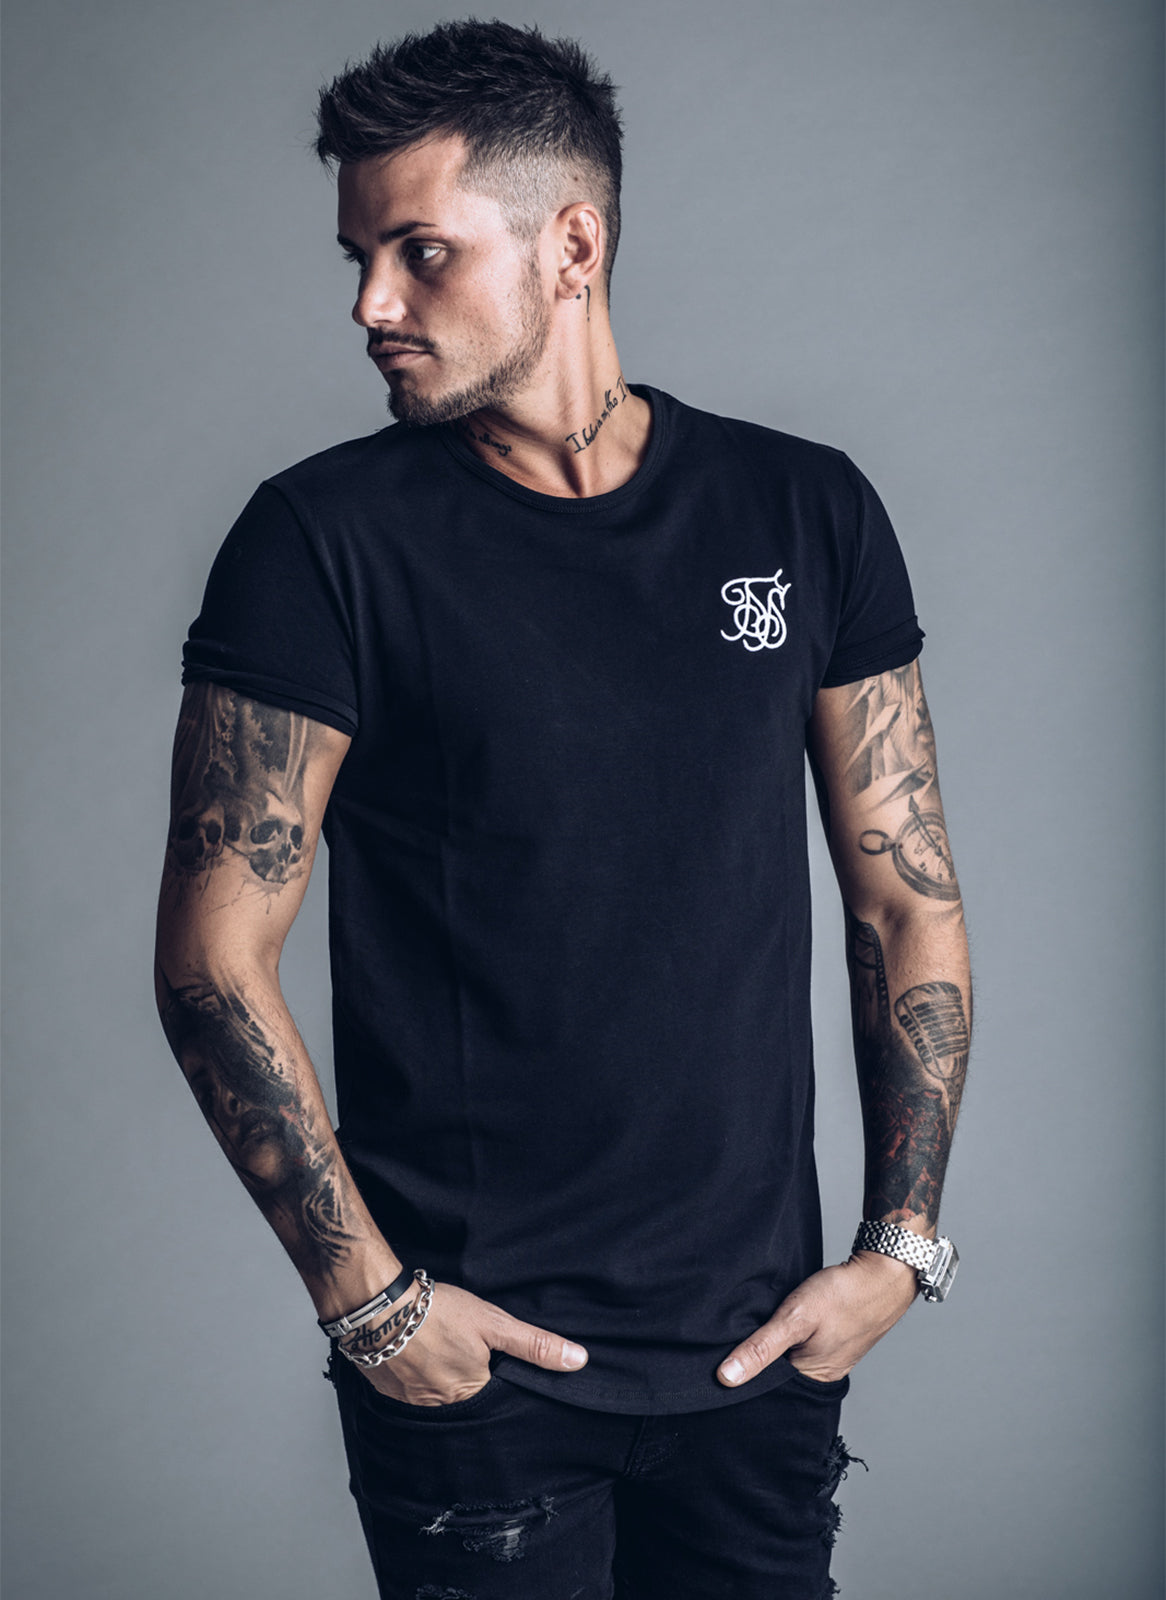 SikSilk Short Sleeve Gym T-shirt - Black